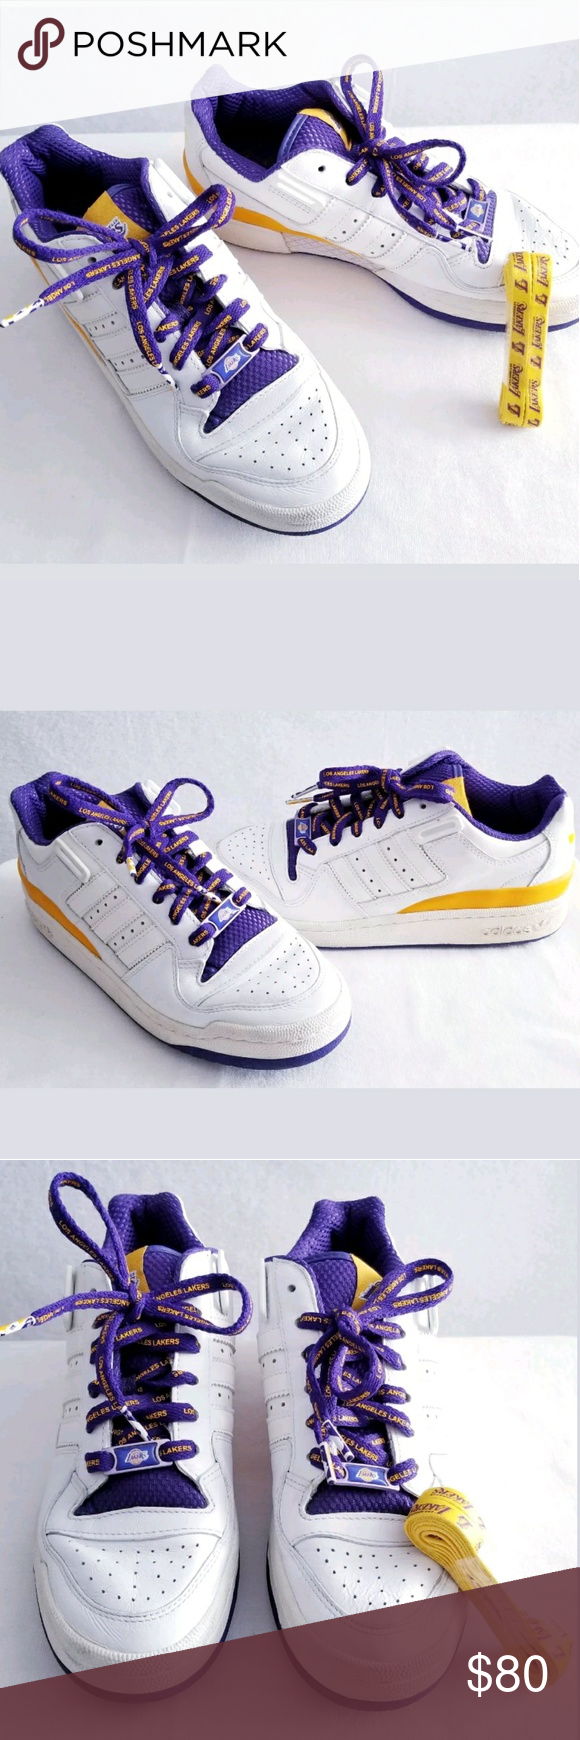 2c97e48f90d6 Adidas Originals L.A. Lakers Sneakers Shoes US 7 Part of the NBA pack from  adidas is